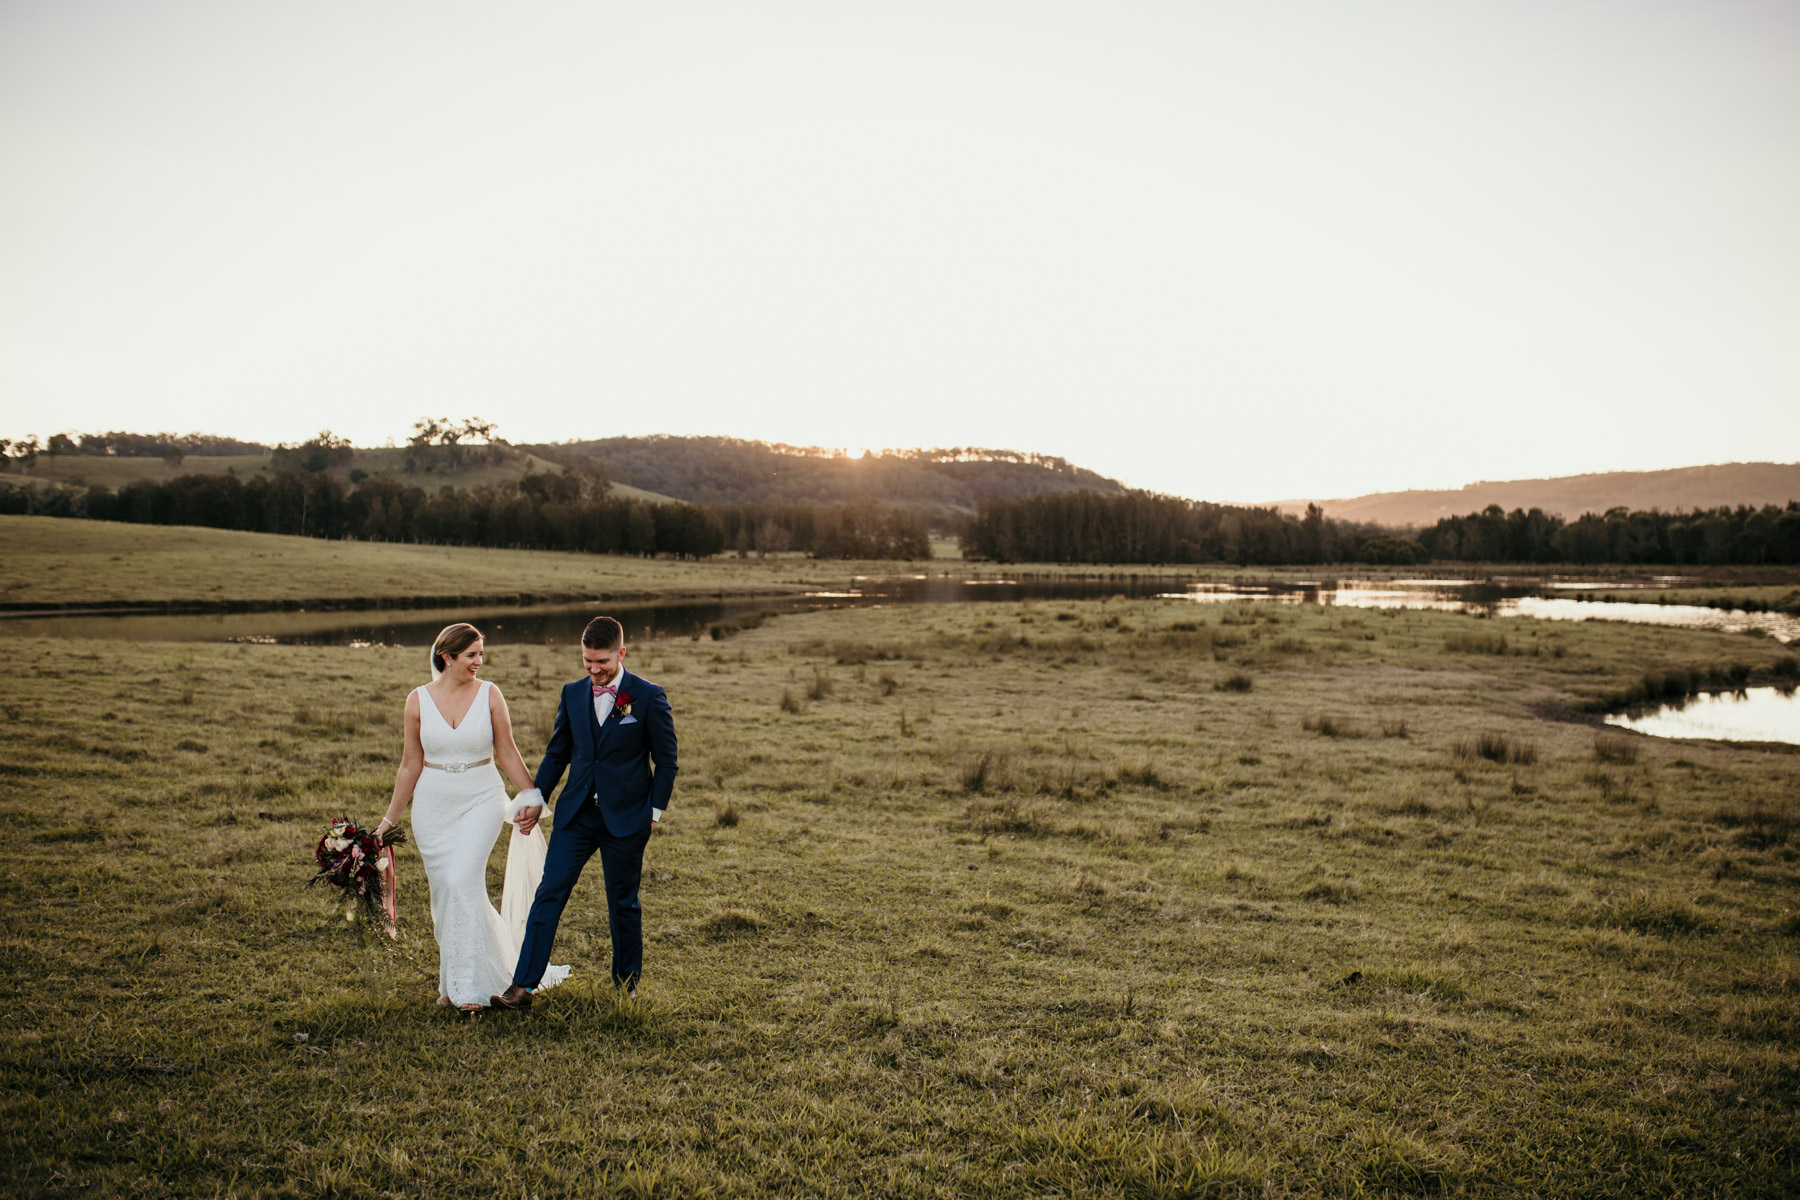 100Hunter Valley Wedding Photographers Bryce Noone Photography at Tocal Homestead Wedding Venue.jpg